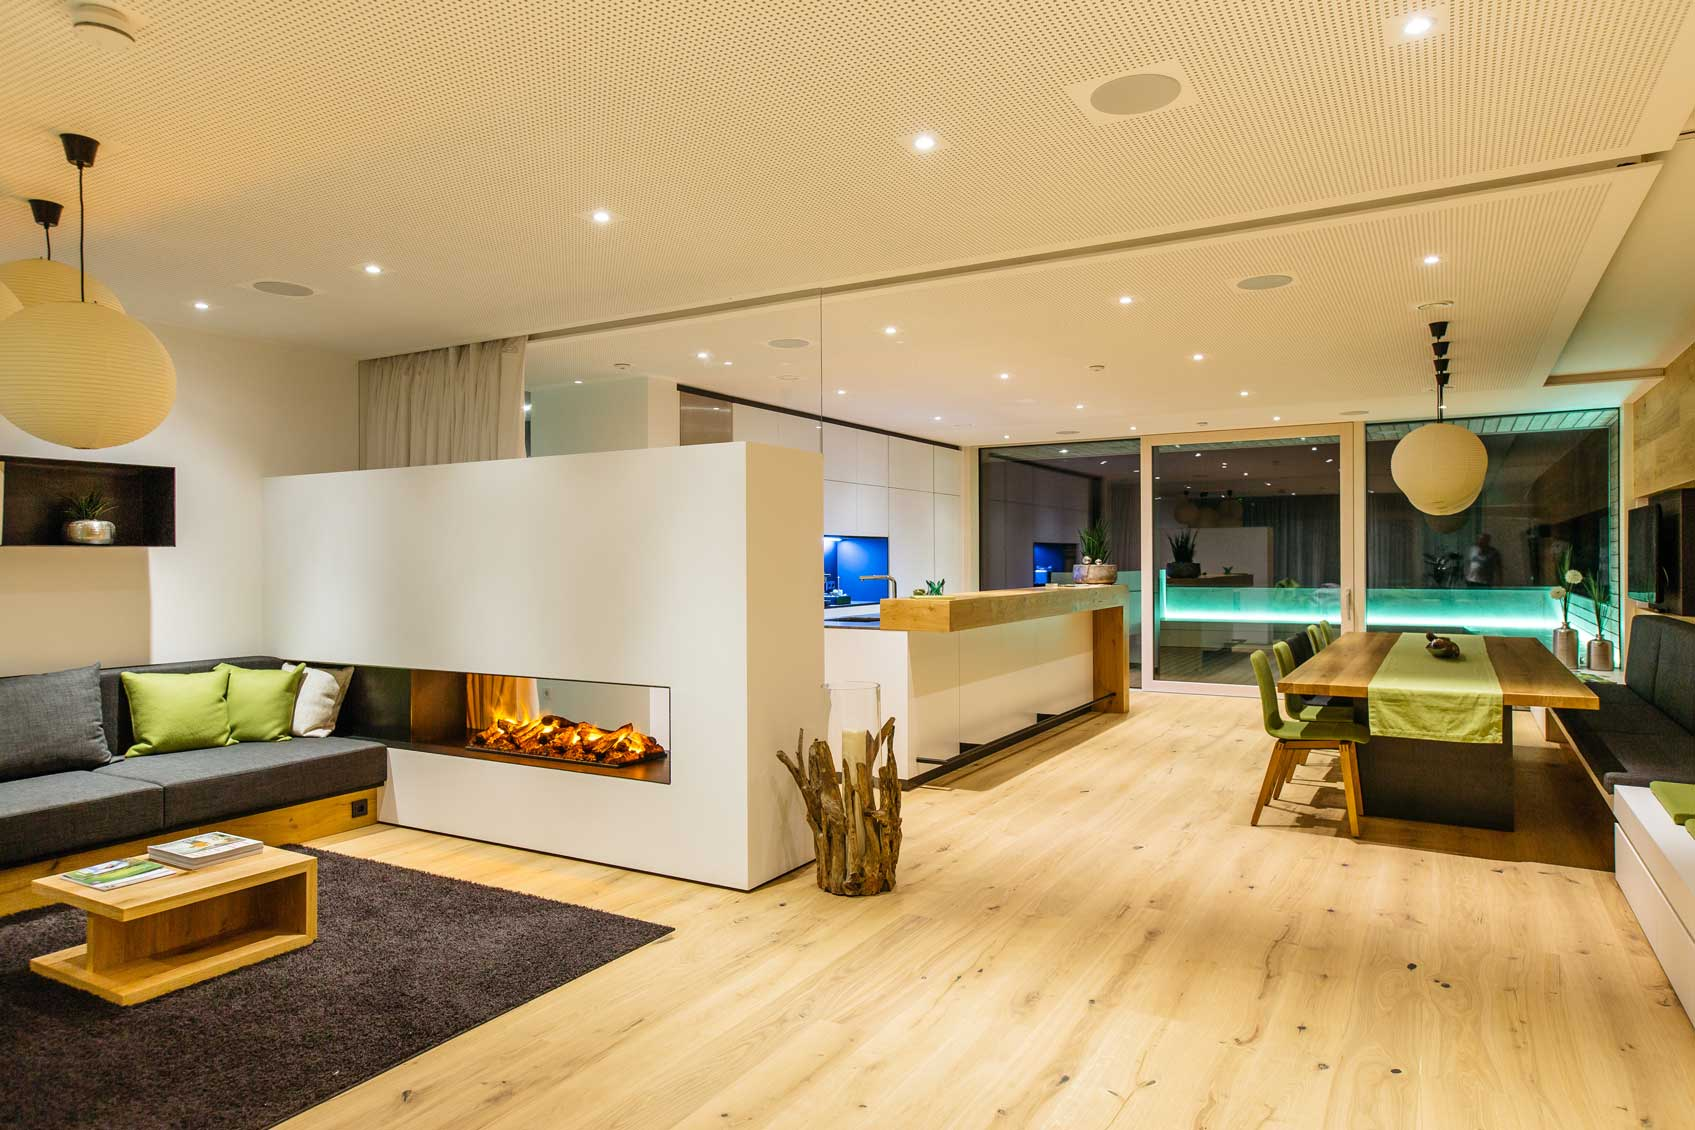 ambient lighting utilize led lights to set the mood of your smart home